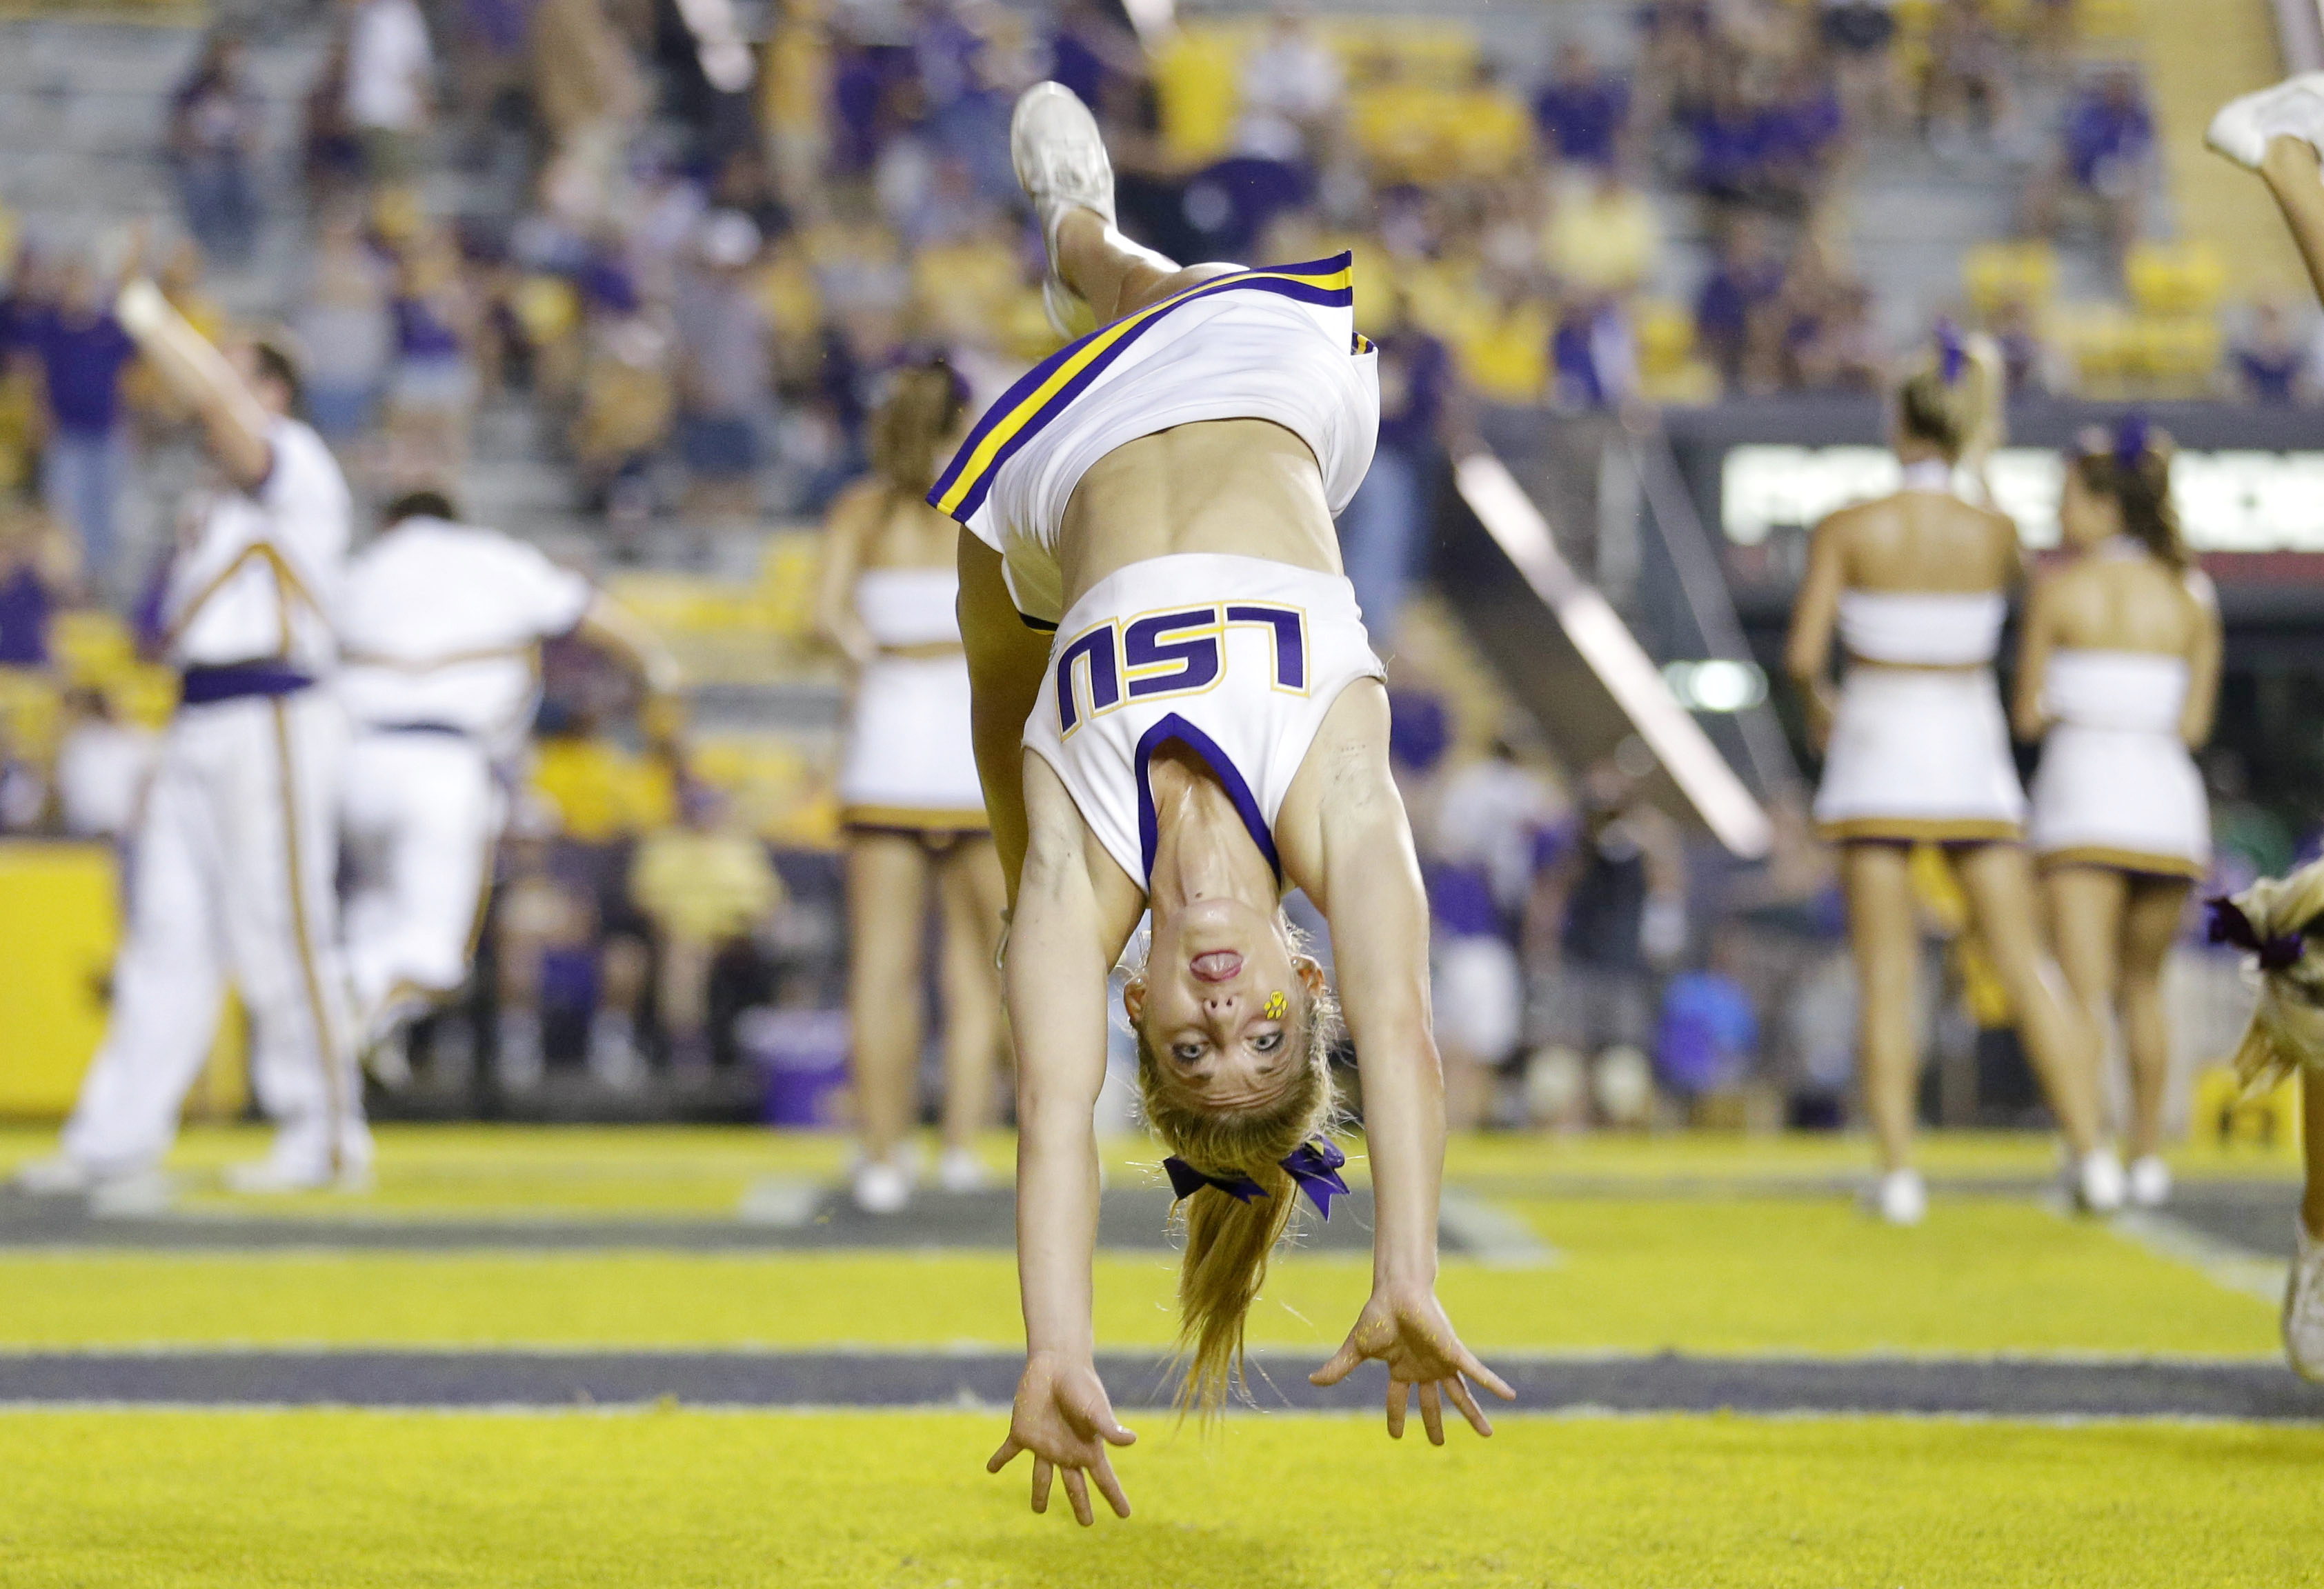 LSU cheerleaders perform in the second half of an NCAA college football game against Kent State in Baton Rouge, La., Saturday, Sept. 14, 2013. LSU won 45-13. (AP Photo/Gerald Herbert)